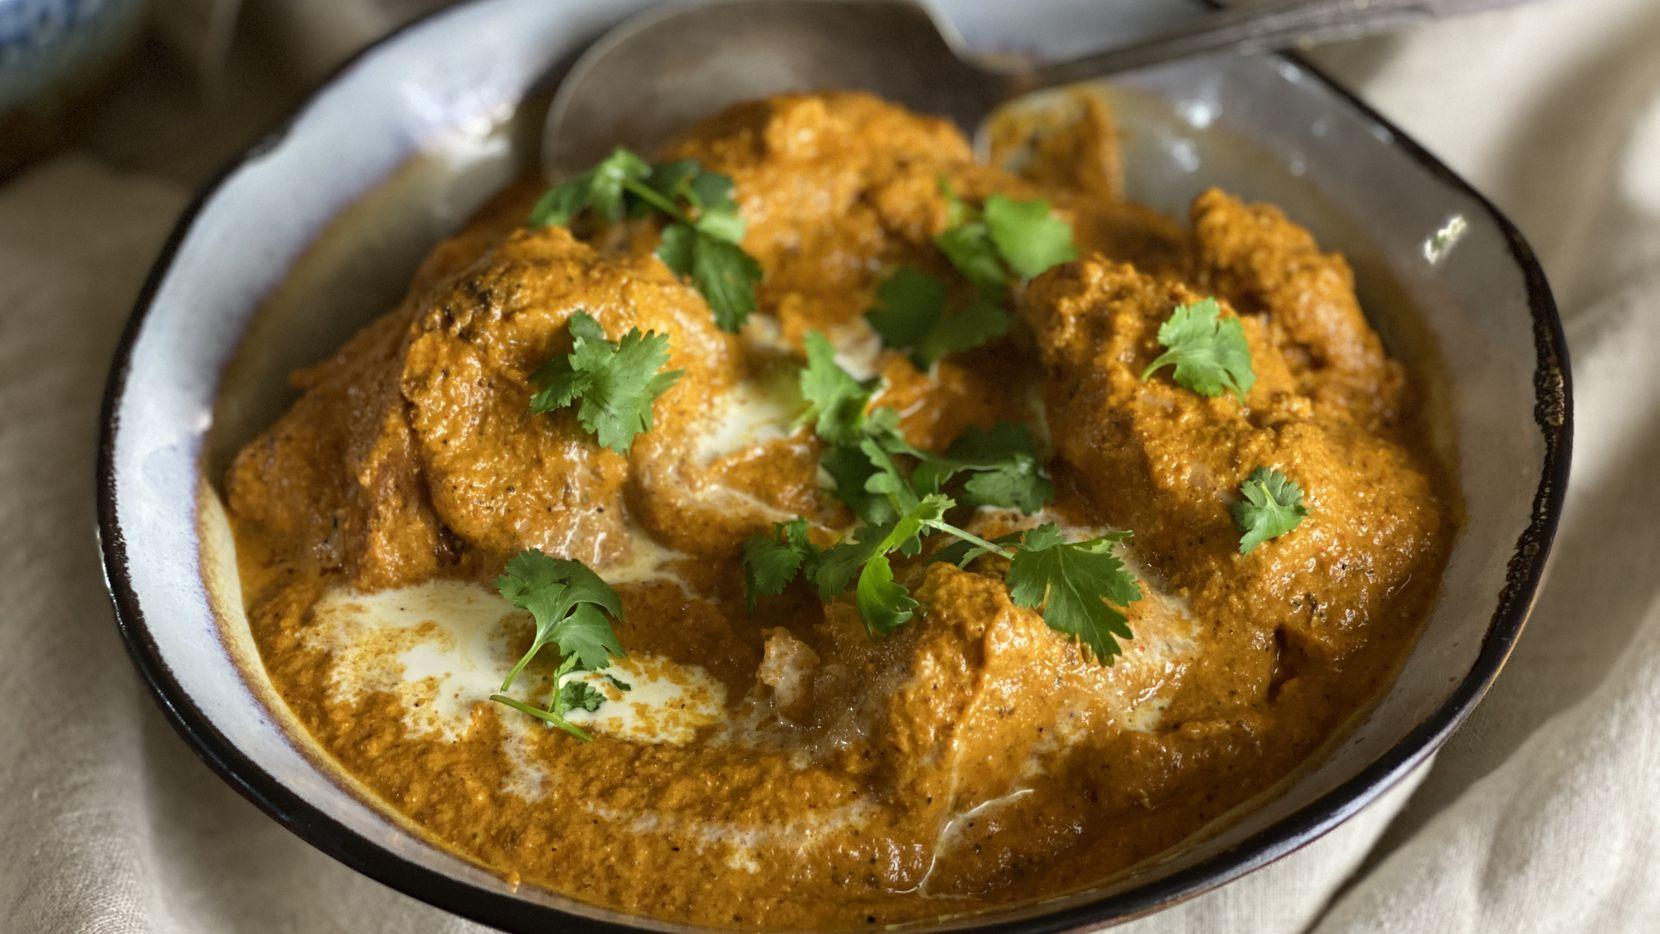 Celebrate World Butter Chicken Day with everyone's favorite Indian dish.